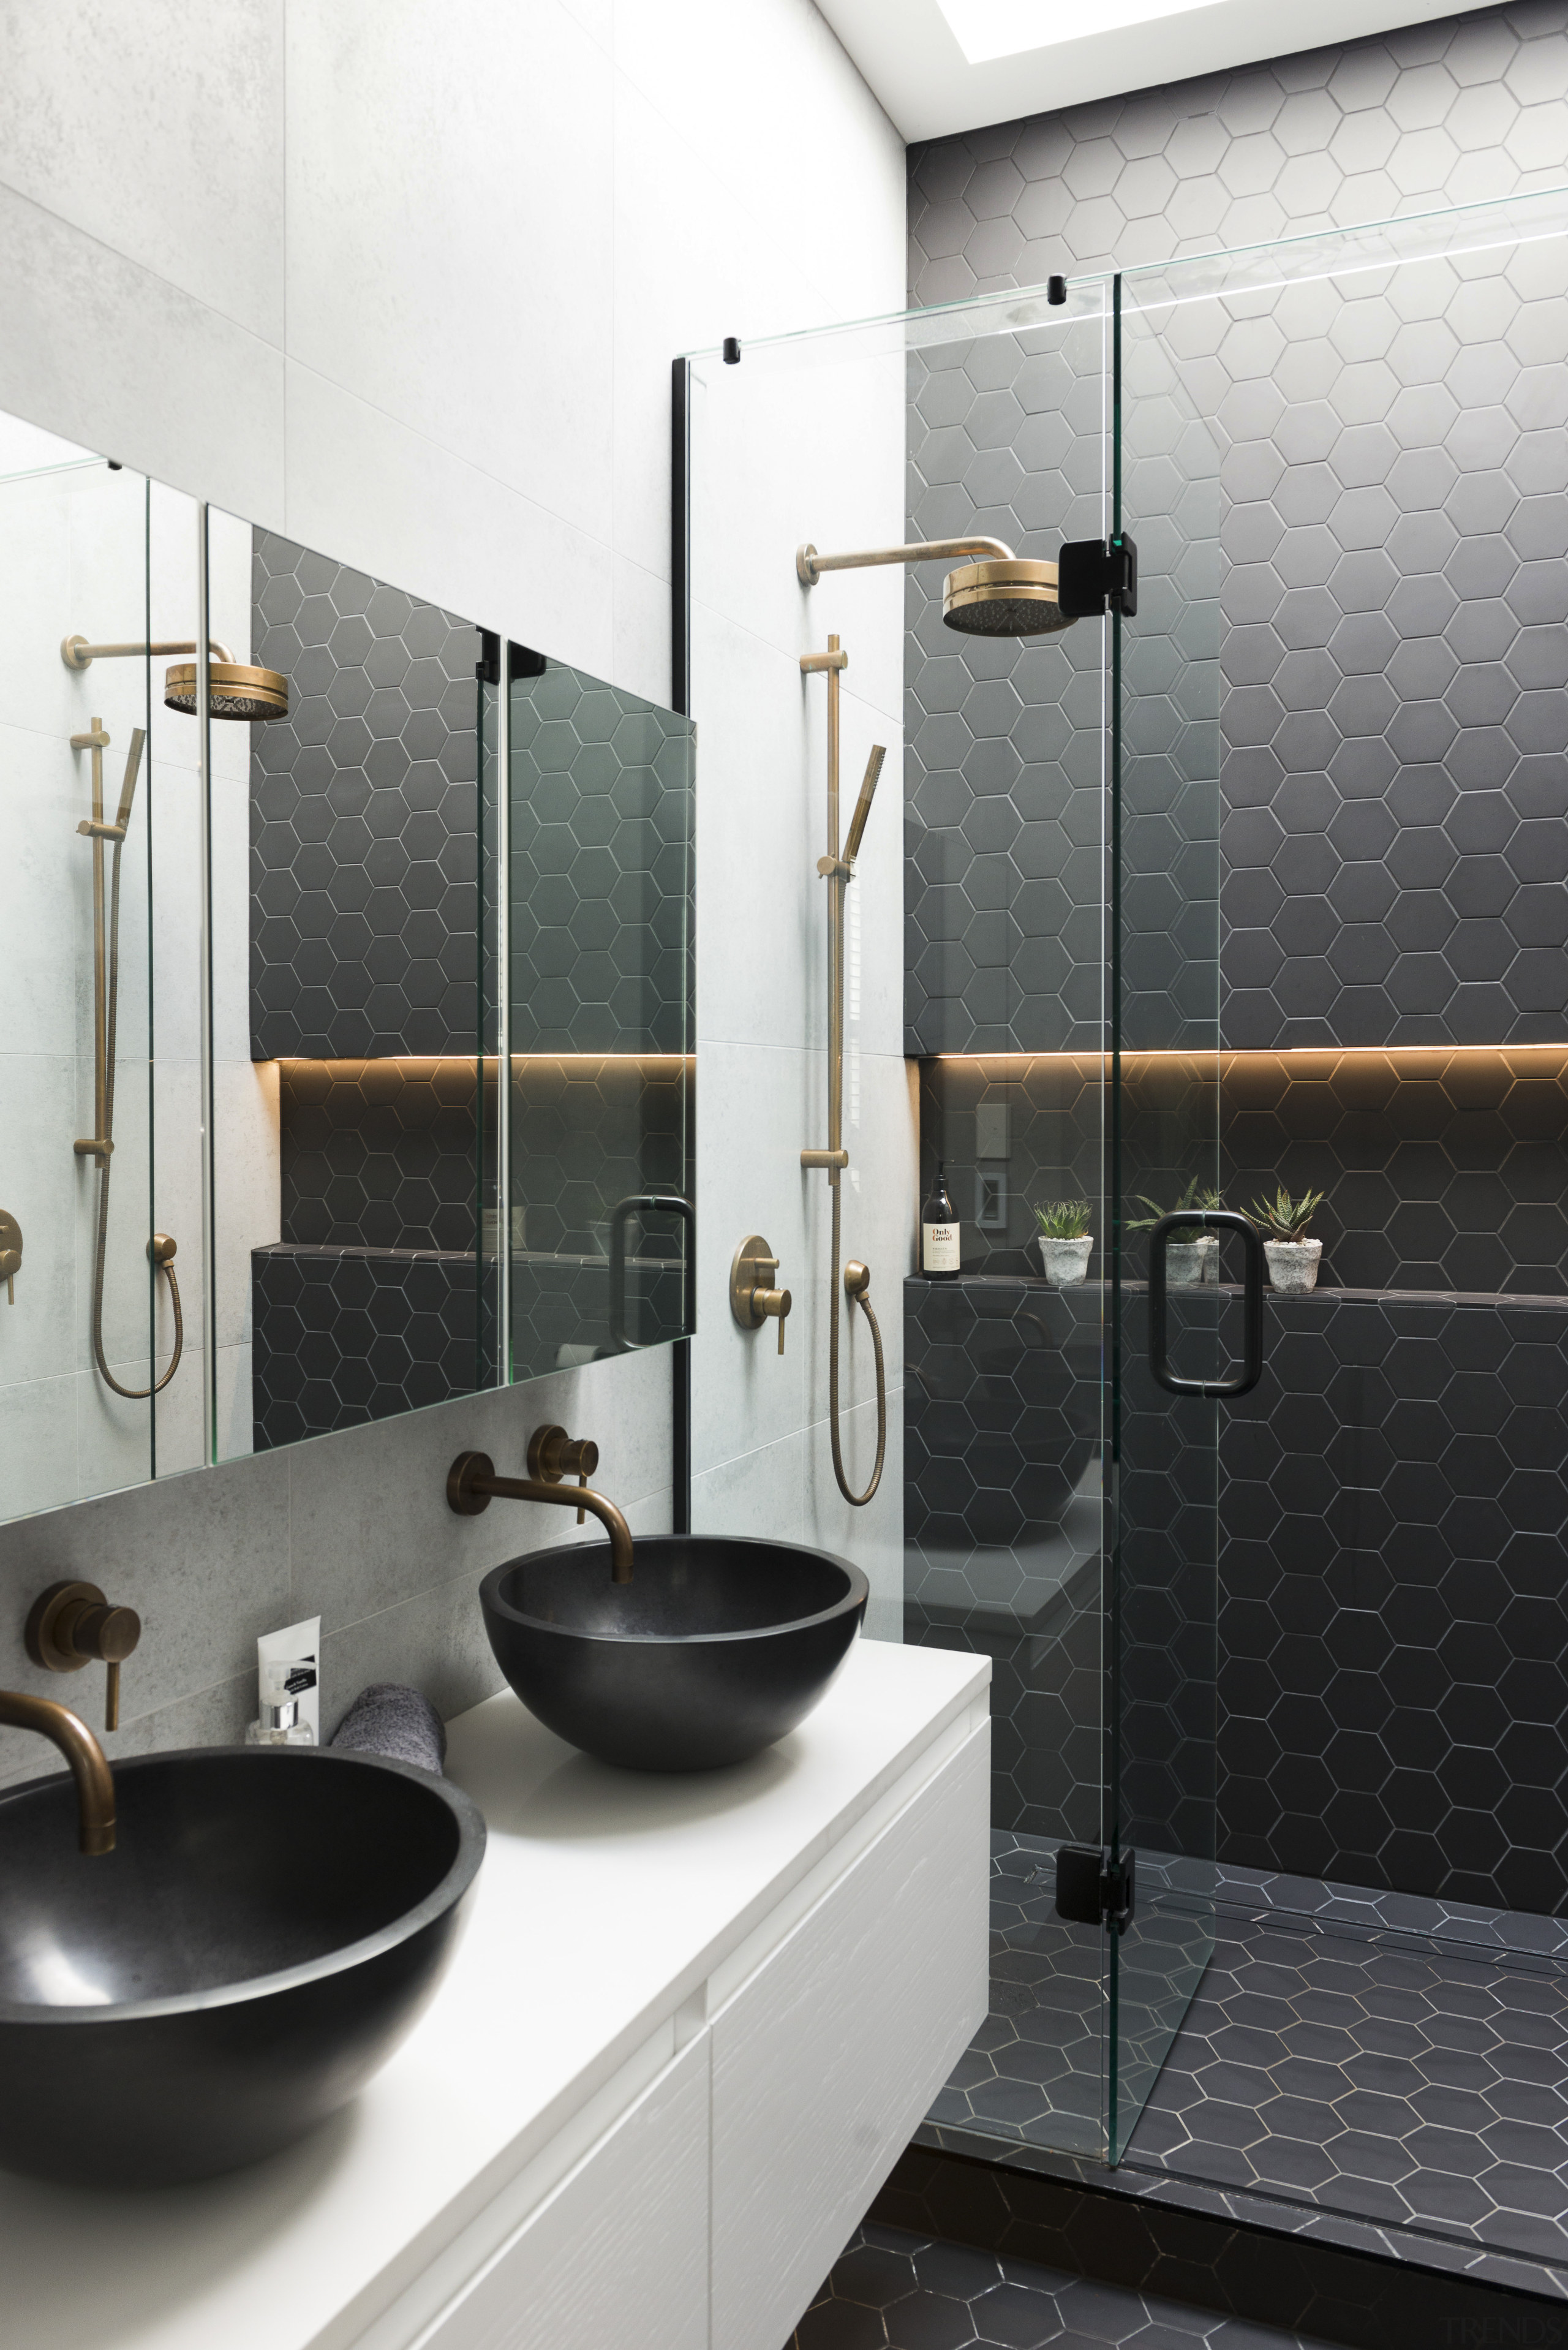 Black tiles, concrete tiles, and brass fittings all bathroom, interior design, plumbing fixture, product design, room, sink, tap, white, black